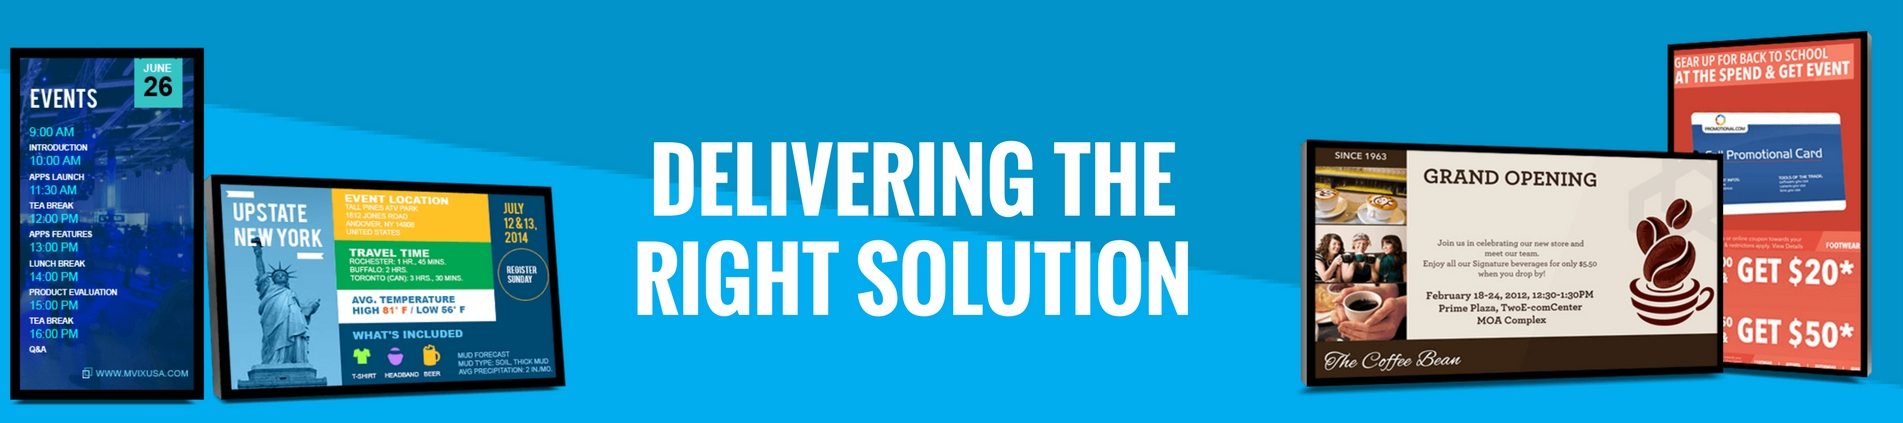 Delivering the RIGHT SOLUTIONS